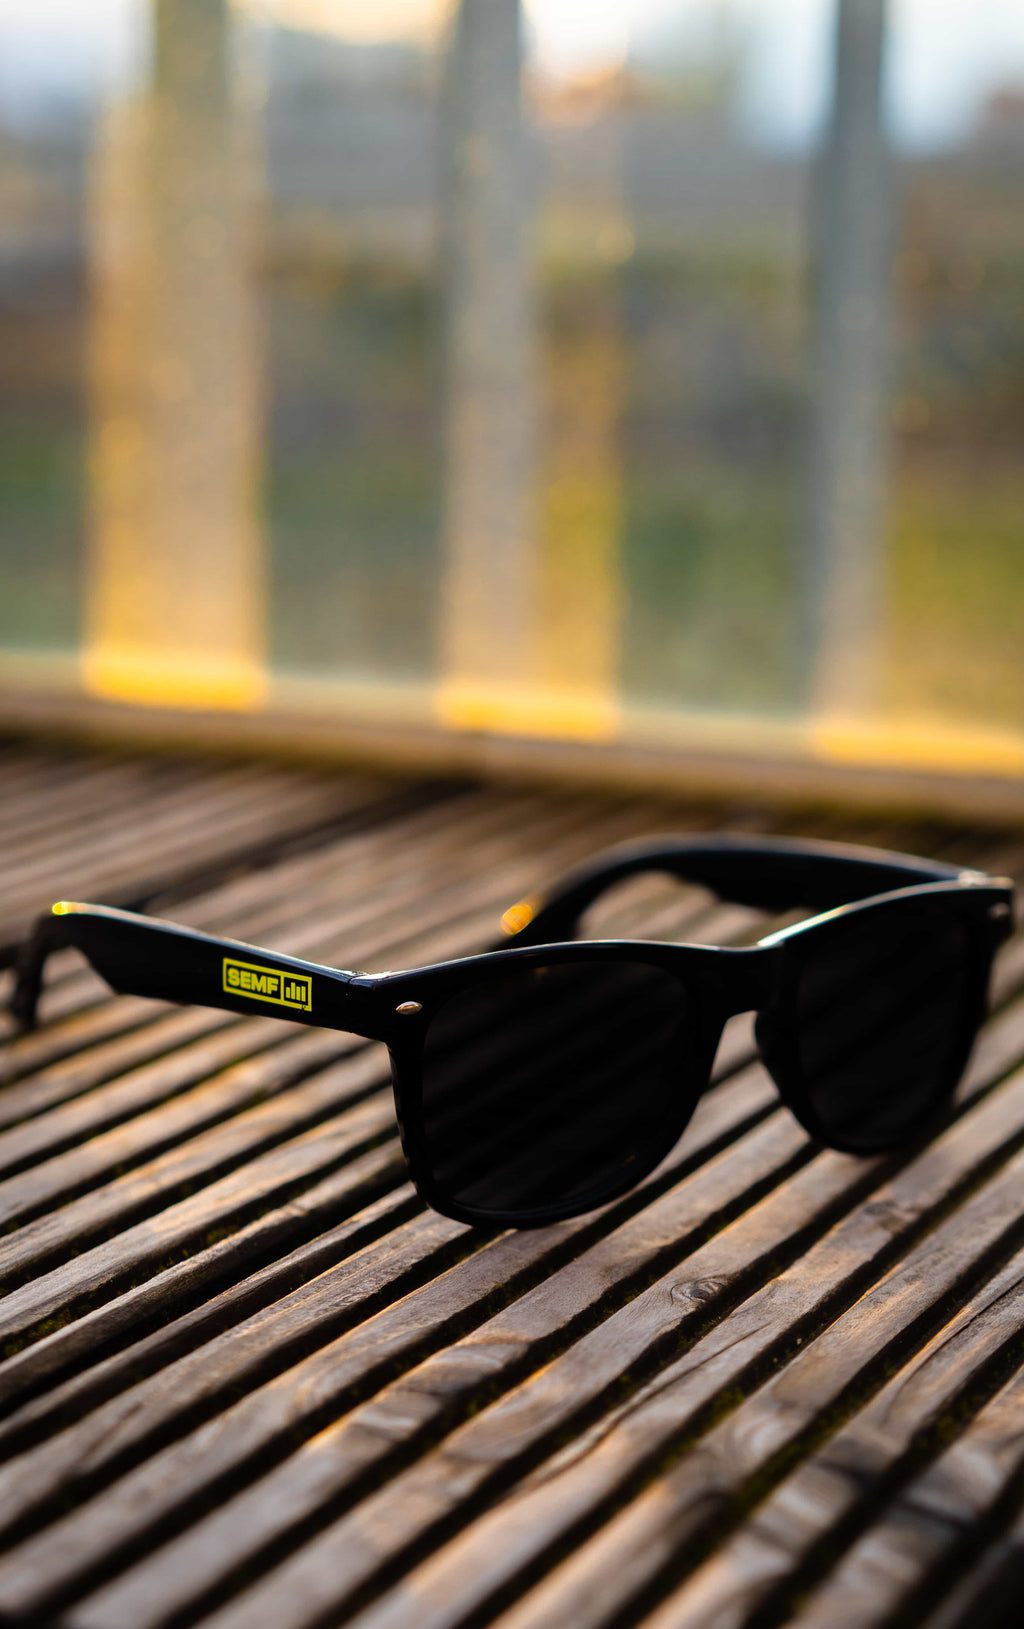 SEMF Sunglasses